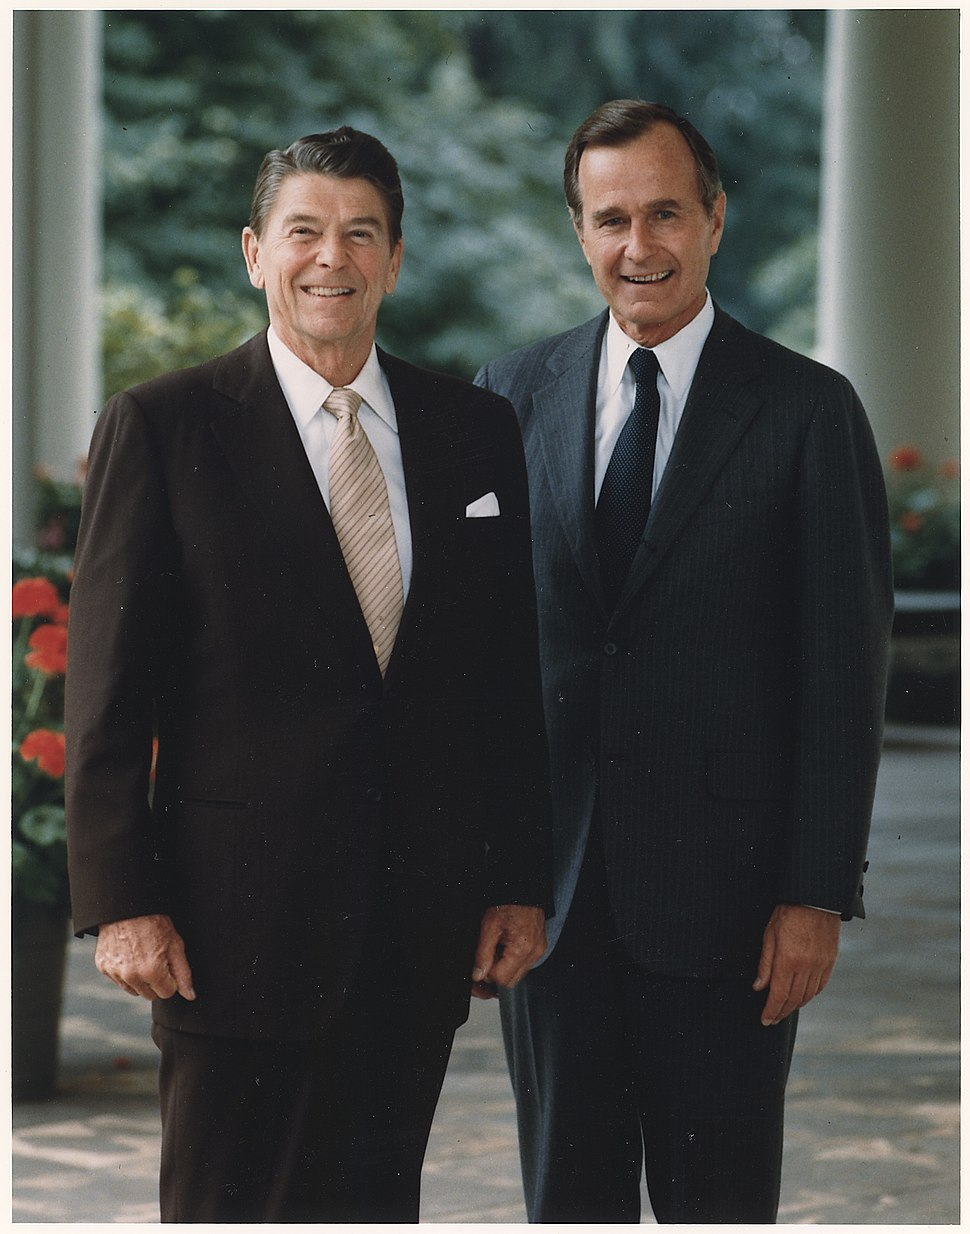 Photograph of the Official Portrait of President Reagan and Vice-President Bush - NARA - 198518